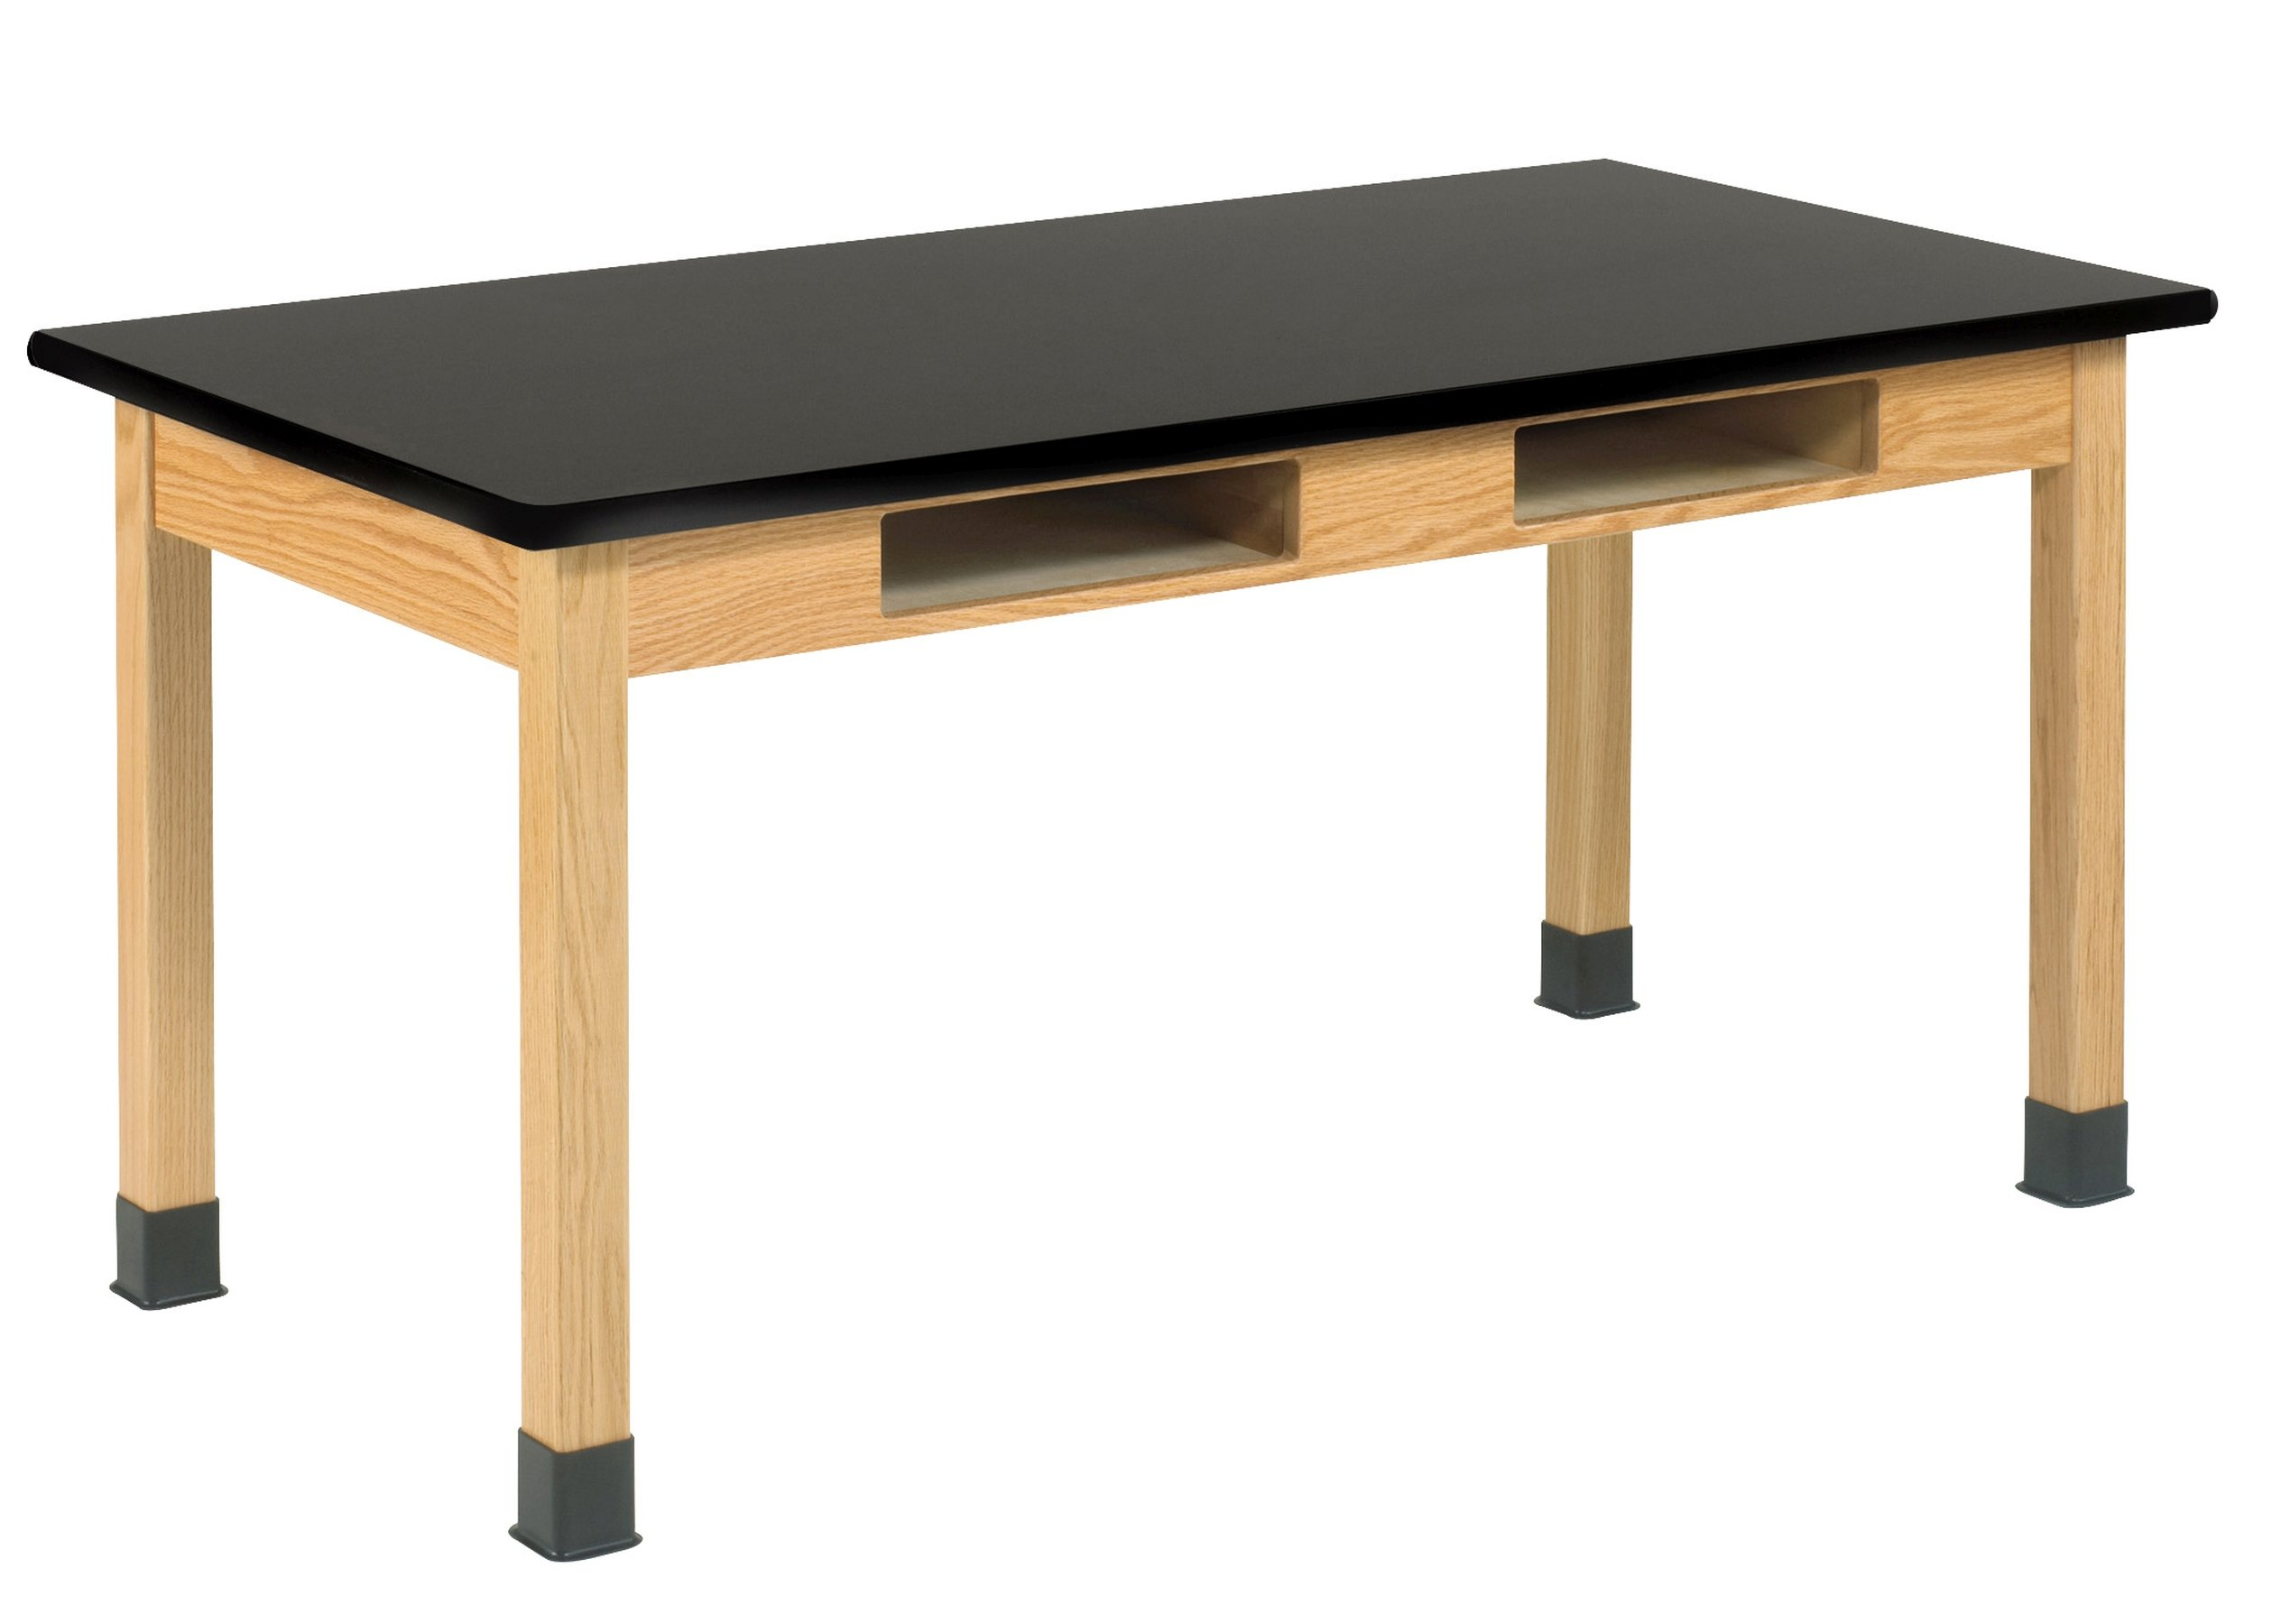 DIVERSIFIED WOODCRAFTS C7601K30N Oak Table with Book Compartments, Plastic Laminate Top, 60'' W x 24'' D x 30'' H by Diversified Woodcrafts